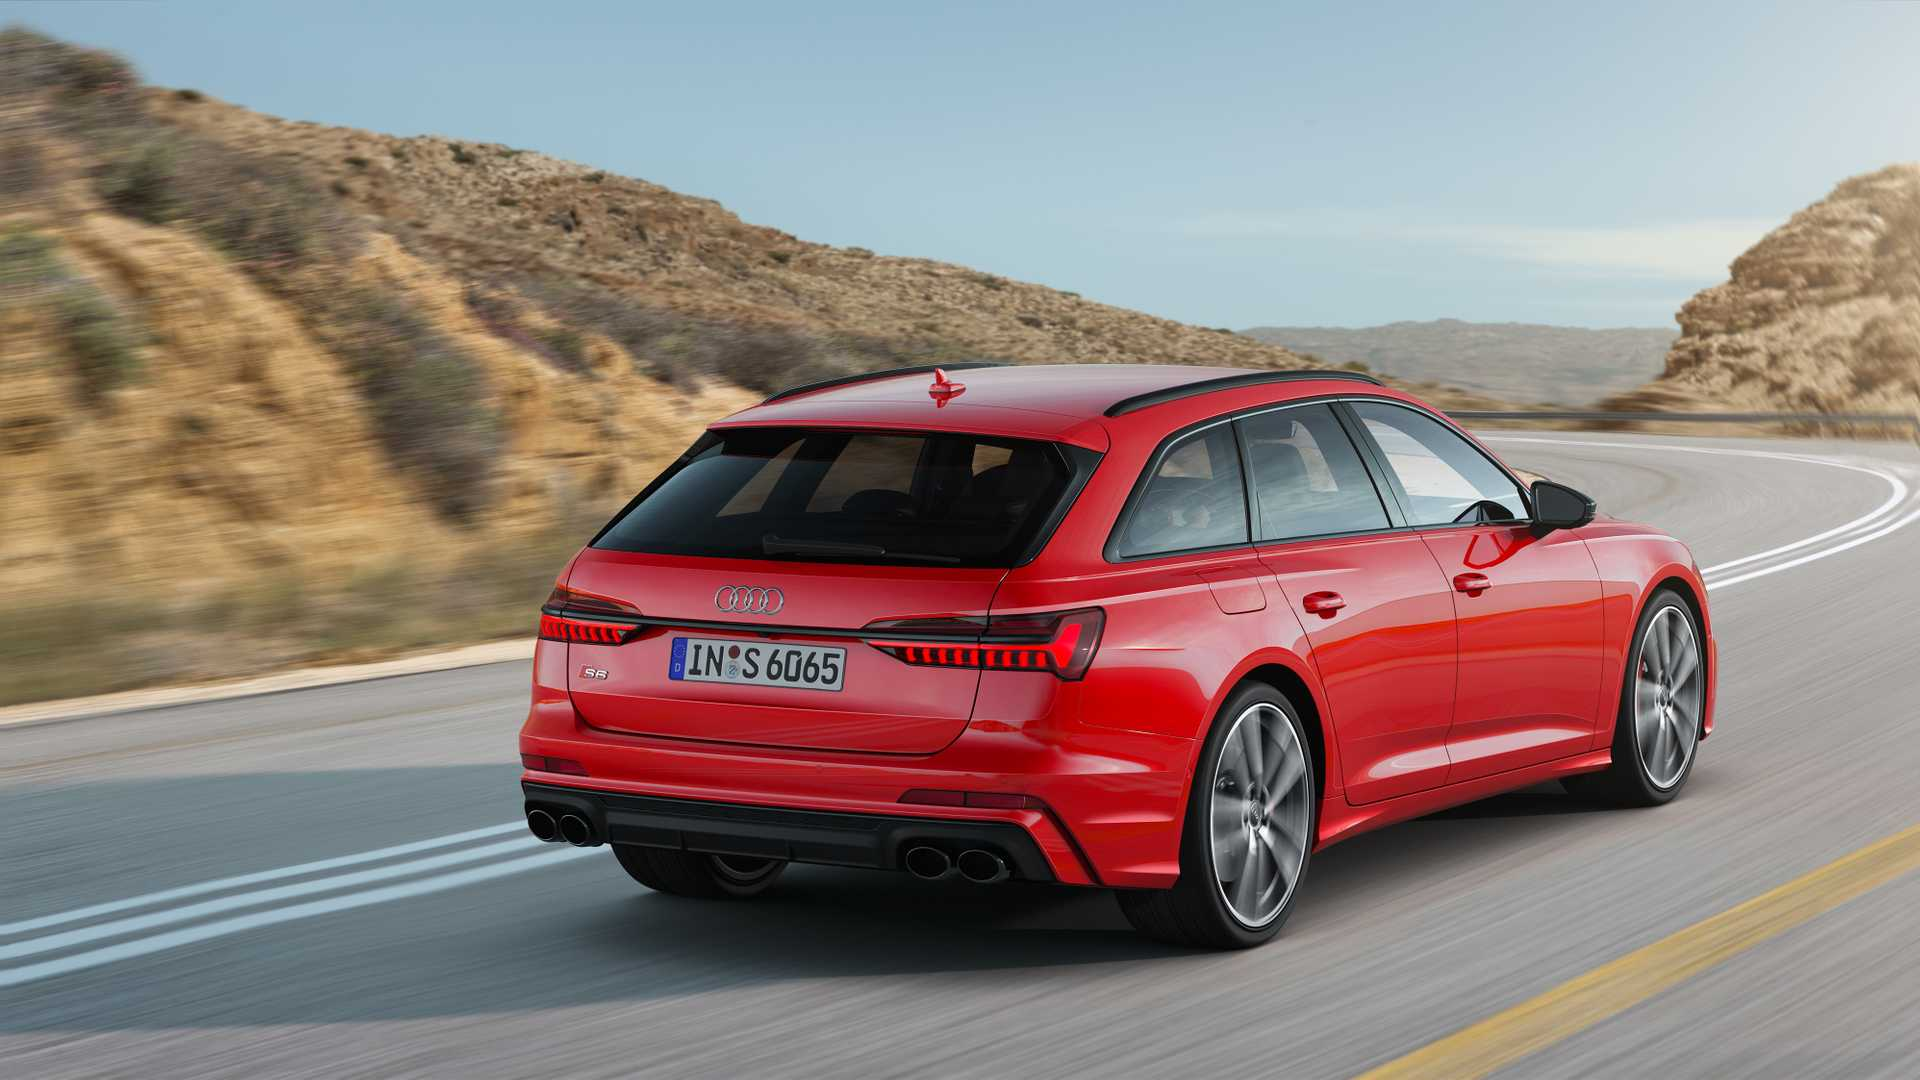 2019 Audi S6 Avant TDI (Color: Tango Red) Rear Three-Quarter Wallpapers (6)